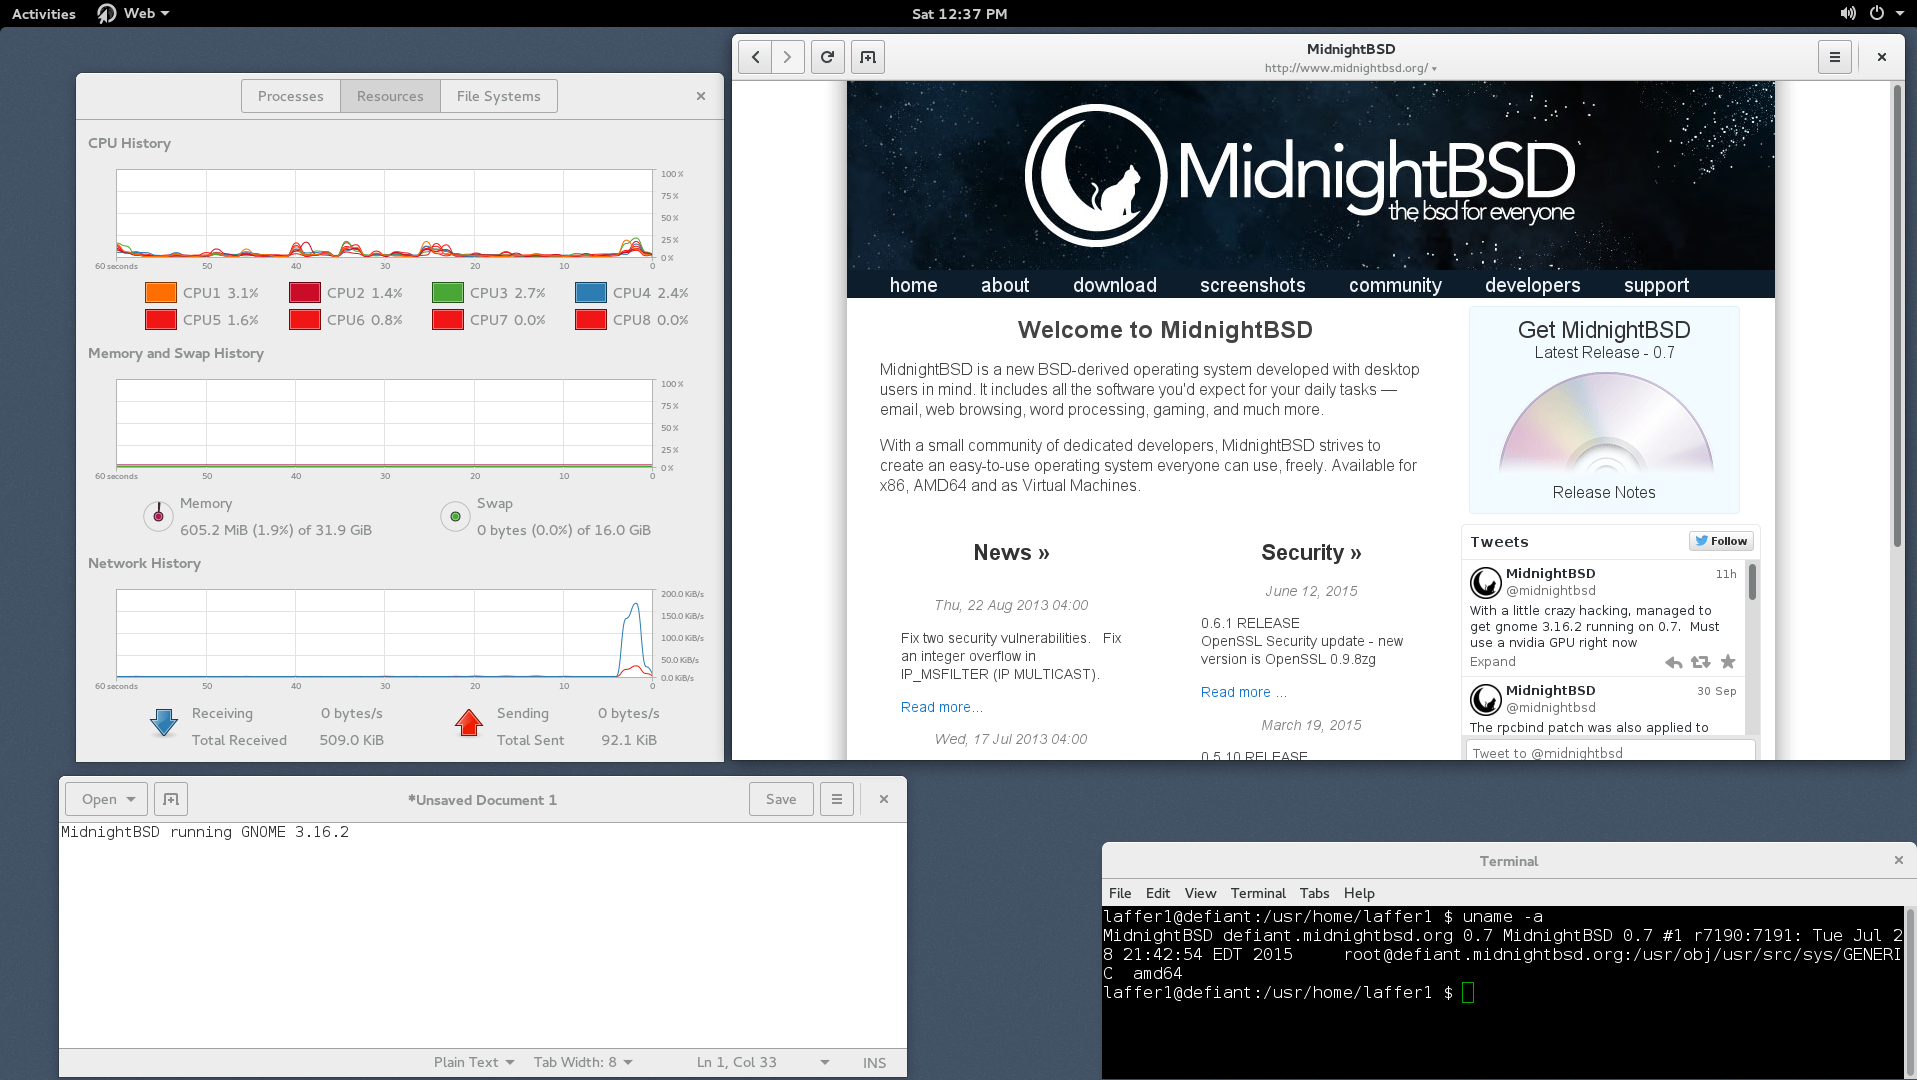 MidnightBSD 0.7 Screenshot